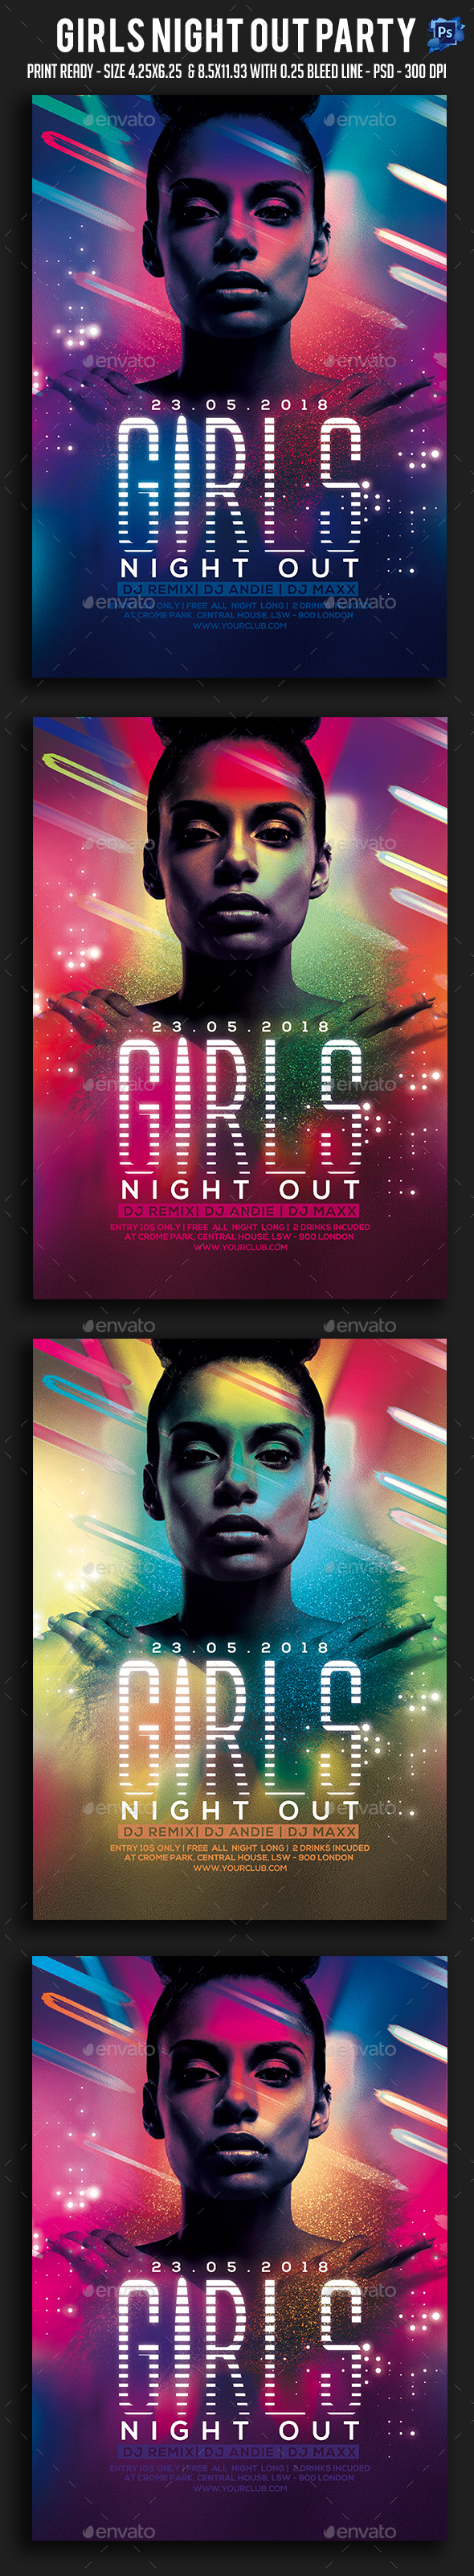 Girls Night Out Party Flyer - Clubs & Parties Events